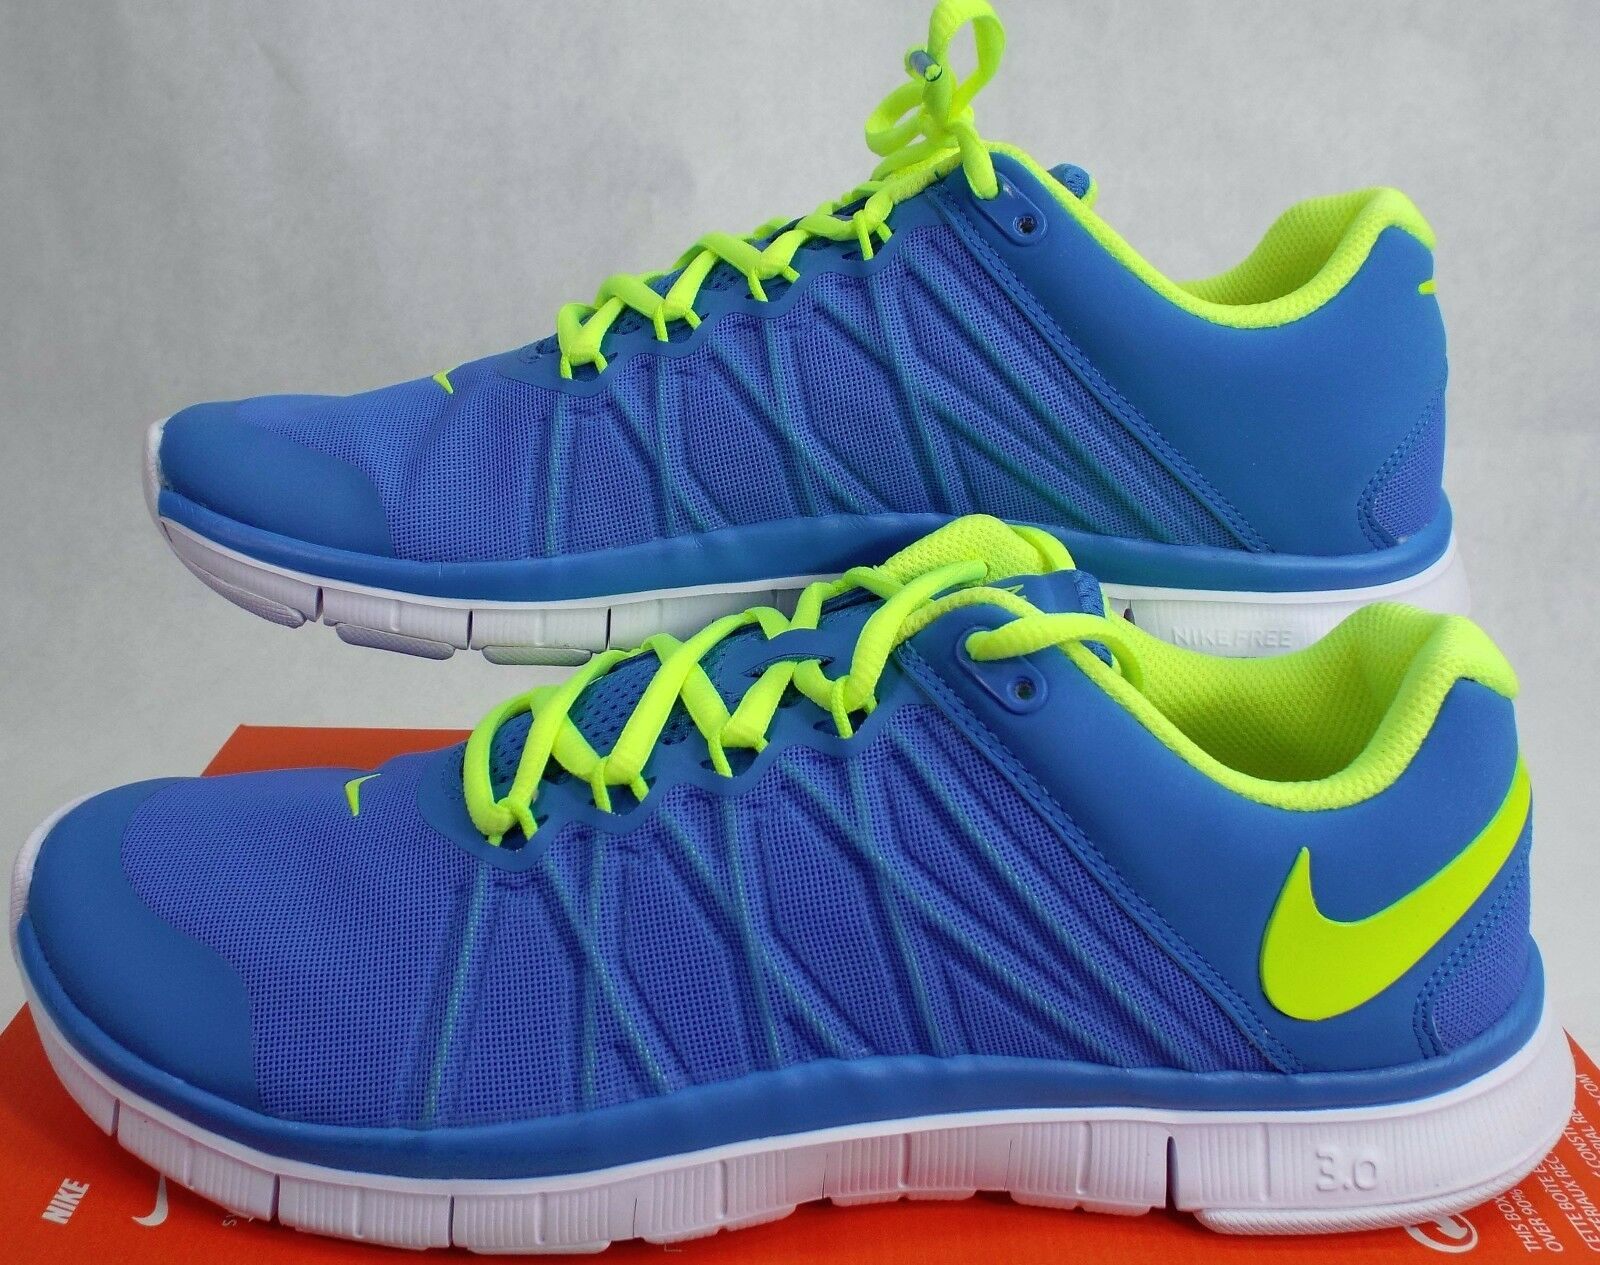 New hommes 11.5 NIKE Free Trainer 3.0 Photo bleu Chaussures  110 630856-402